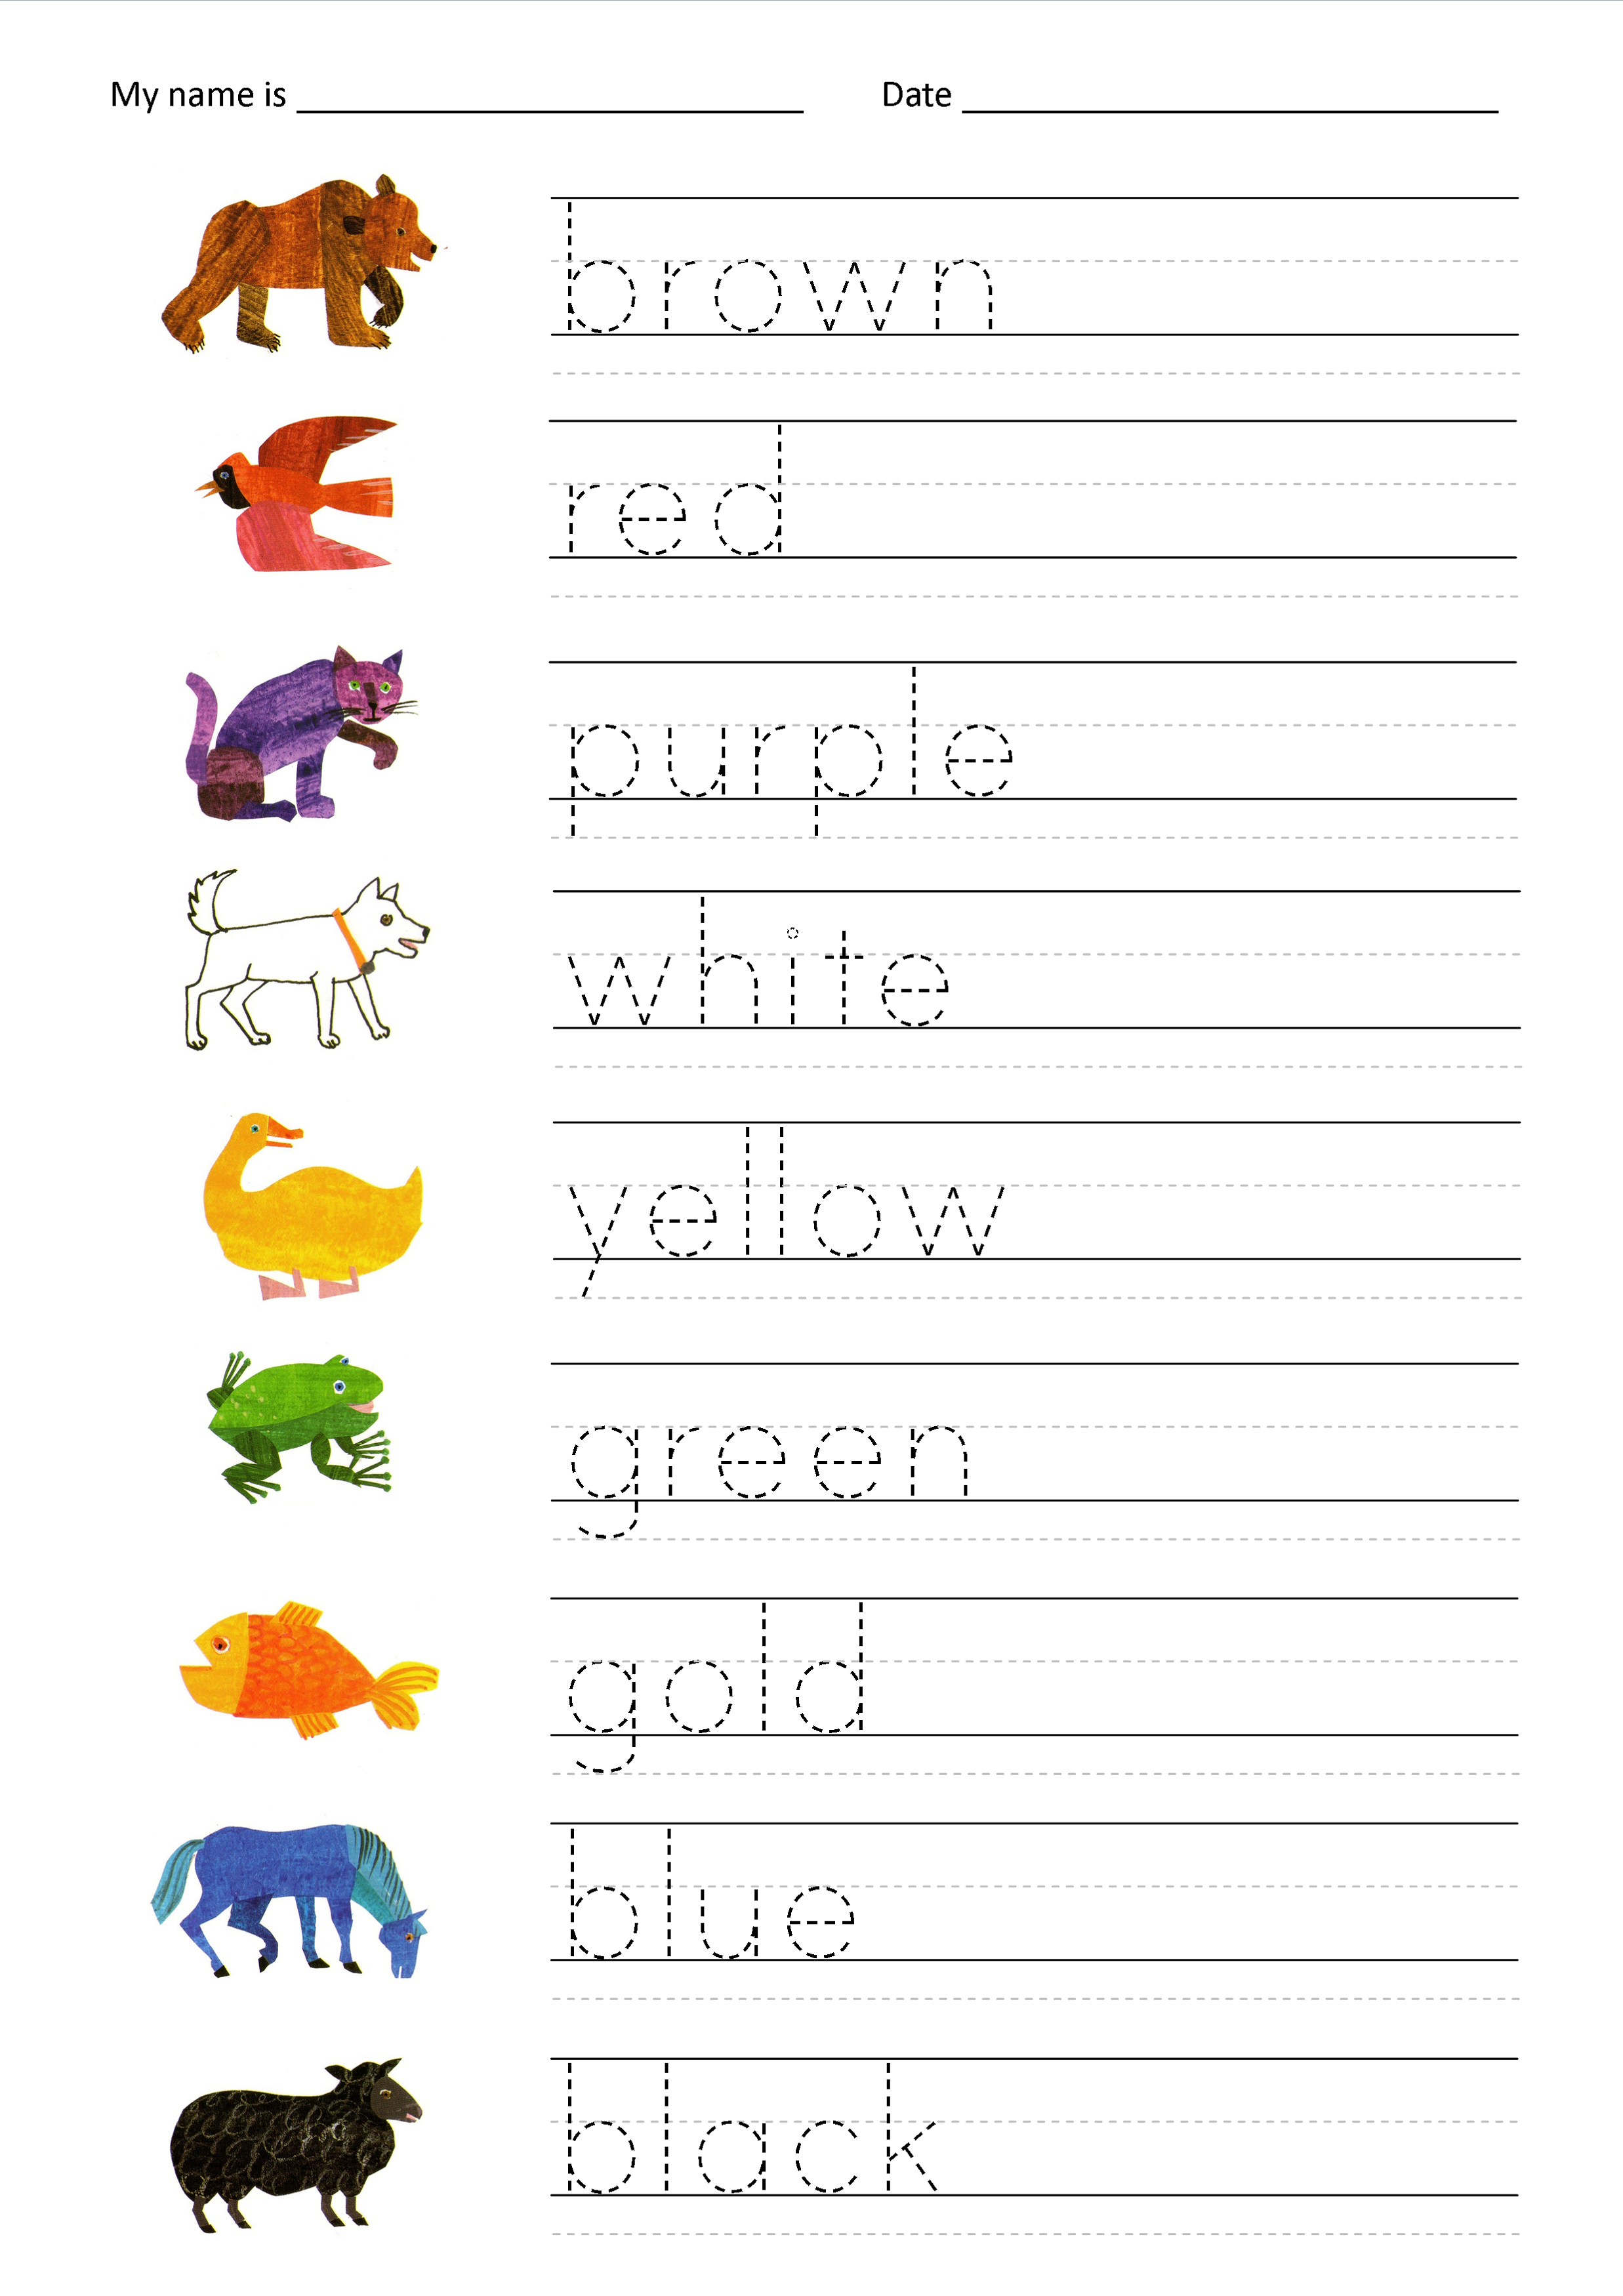 Worksheet ~ Name Tracing Worksheets To Learning Free within Name For Tracing